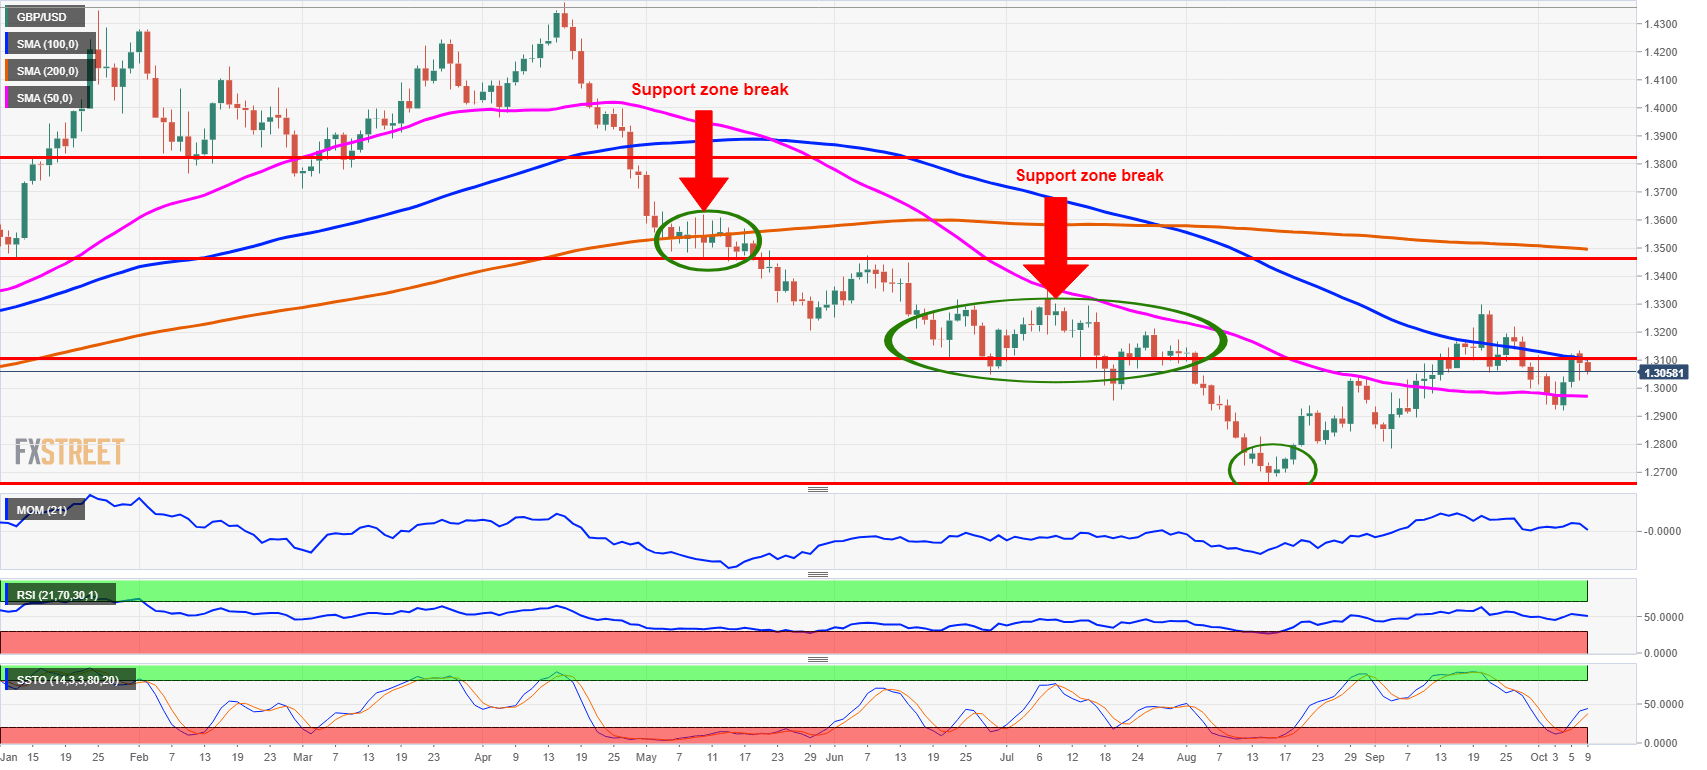 gbpusd_daily-636746705172616317.png